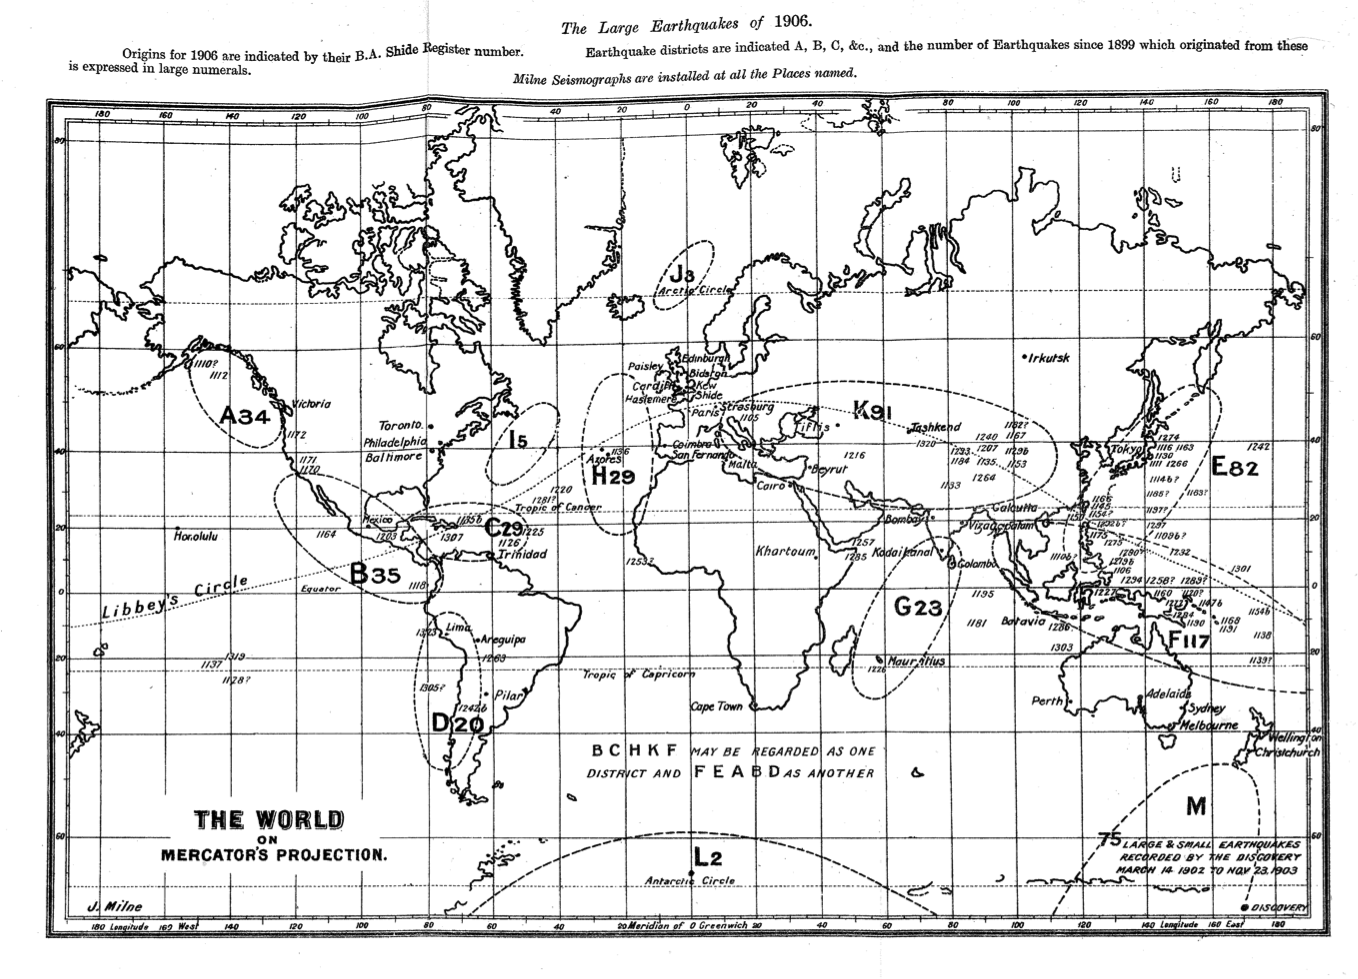 Milne's World Earthquake Map for 1906